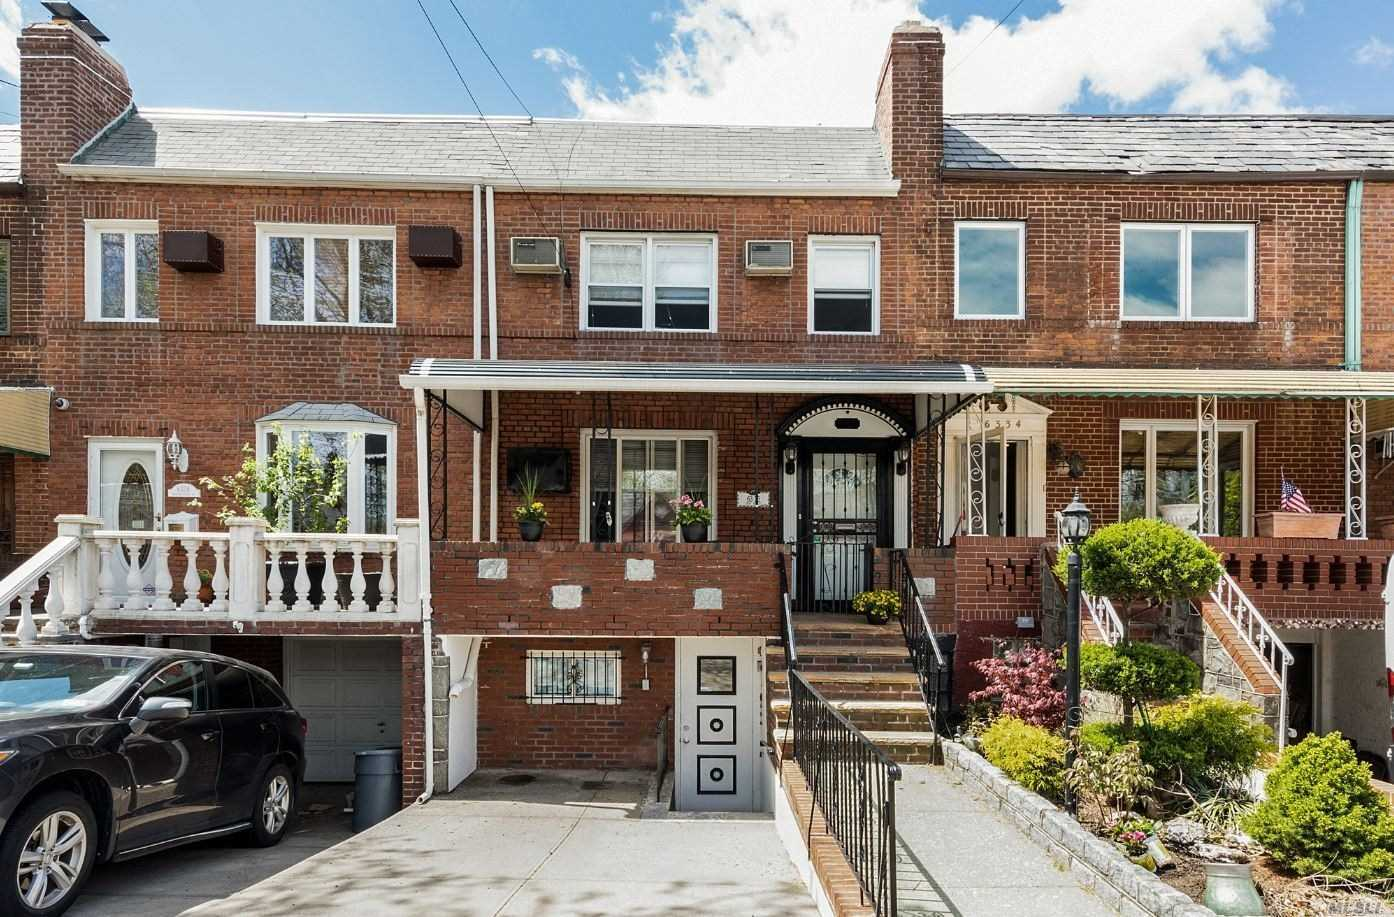 Lovely 1 family brick home located next to Juniper Park & nr. PS 49 school. This inviting home features a large livingroom, formal diningroom, great kitchen and private yard. Never search for parking again with a private driveway in front....